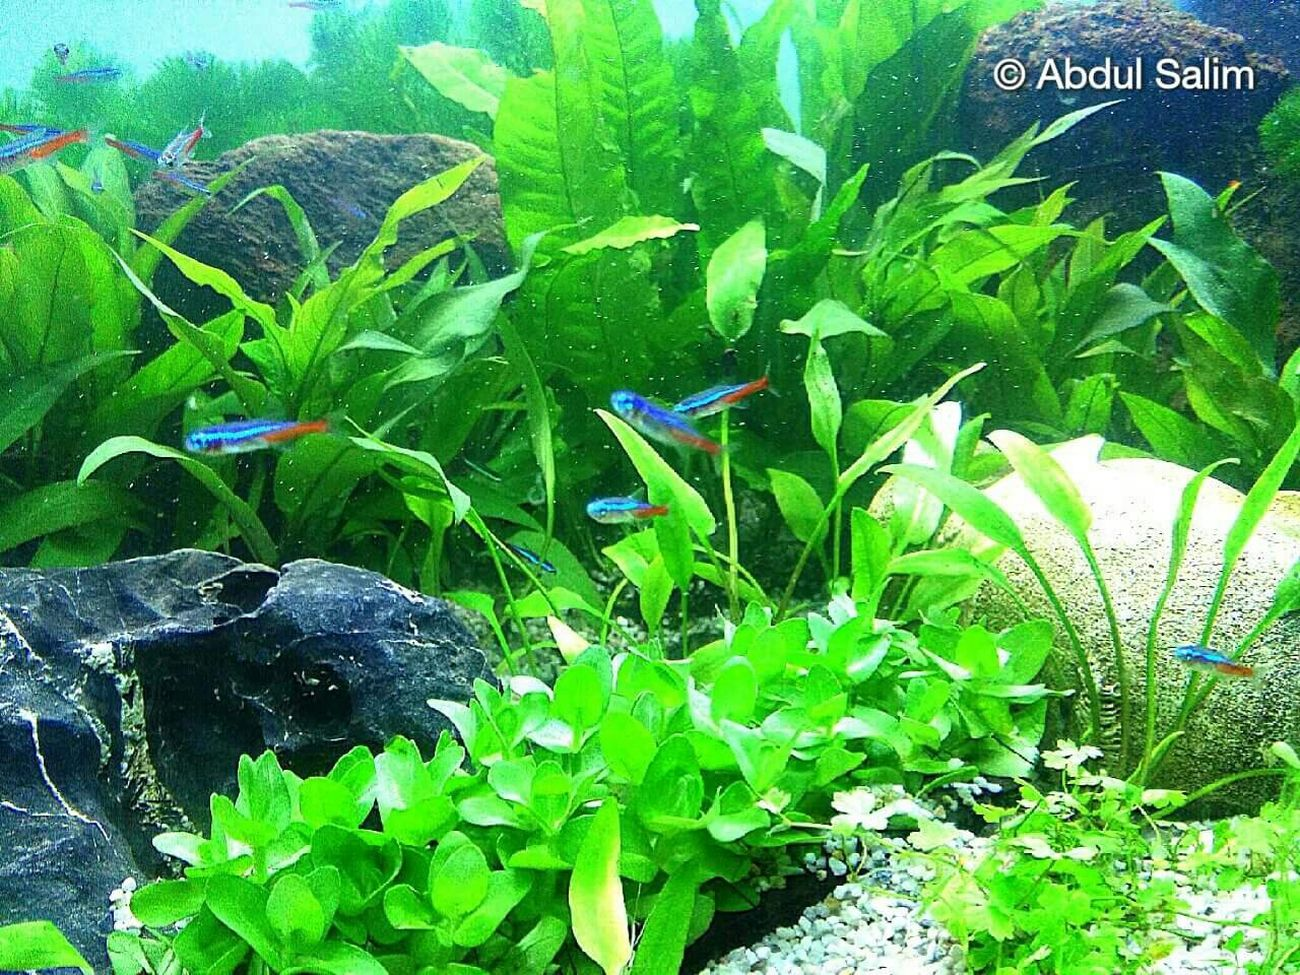 Neontetra Fishes Tropical Fish Aquarium Plantedaquarium Plantedfishtank Little Fishes Little Blue Fishes Swimming